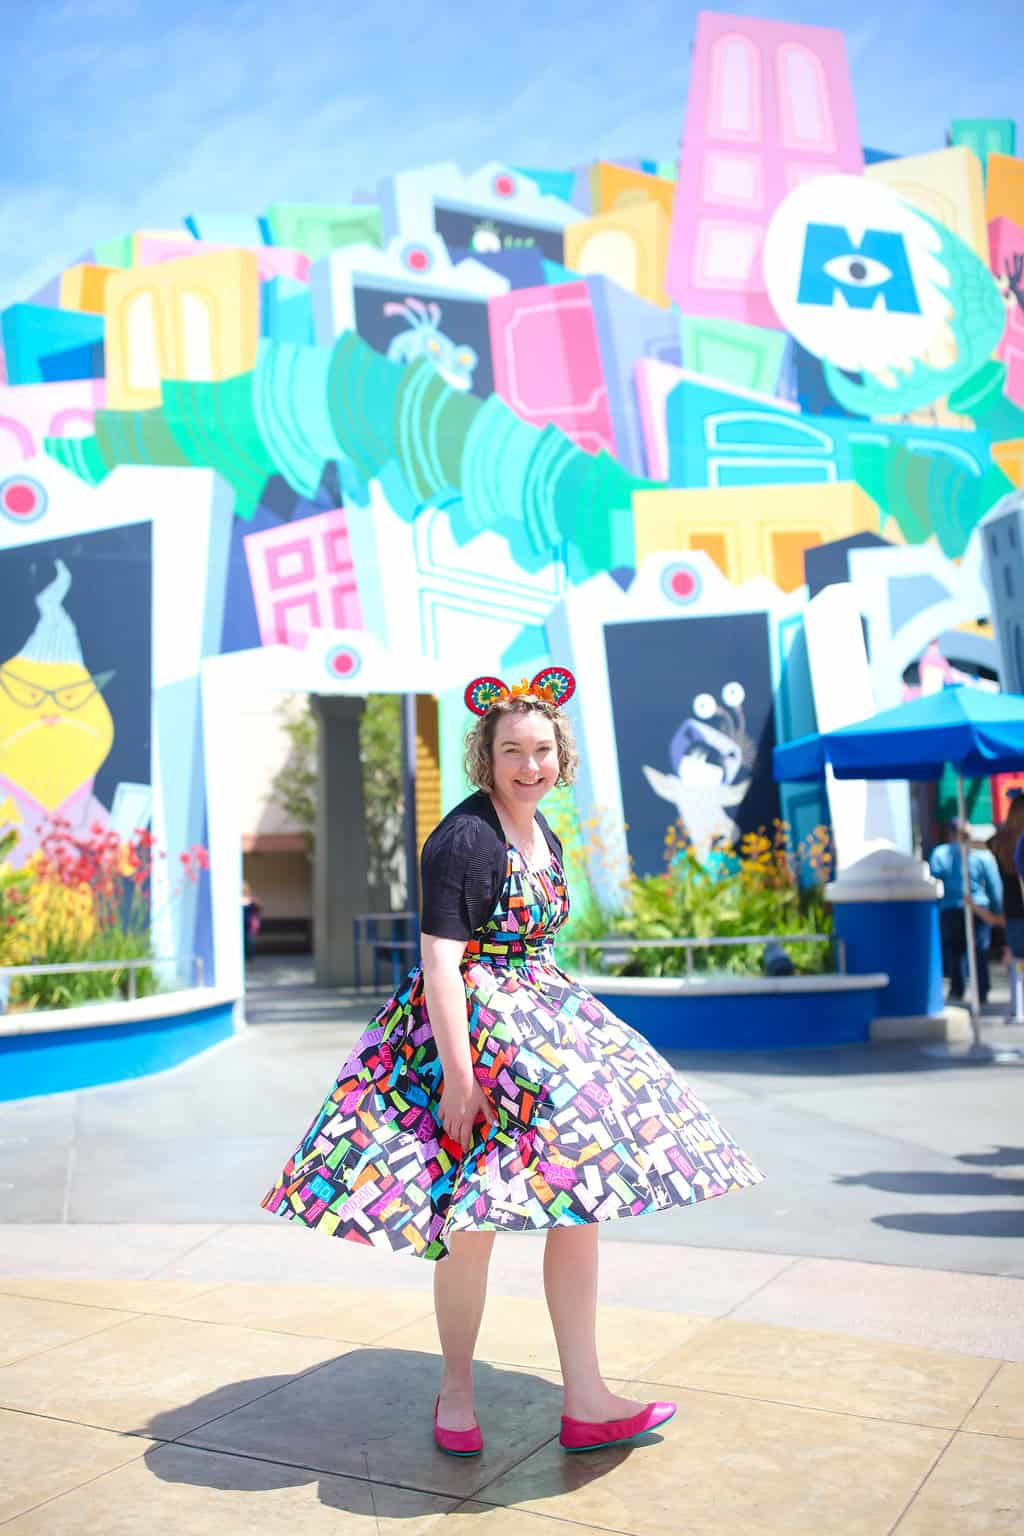 With the opening of Pixar Pier in June and the start of Pixar Fest in April, it's going to be one gigantic, intergalactic, BFF party filled with laughter and fun at Disneyland Resort and Disney California Adventure. Here's what you should wear! #disneybounding #disneyland #pixarfest #disneyoutfit #disneyideas #pixar #monstersinc